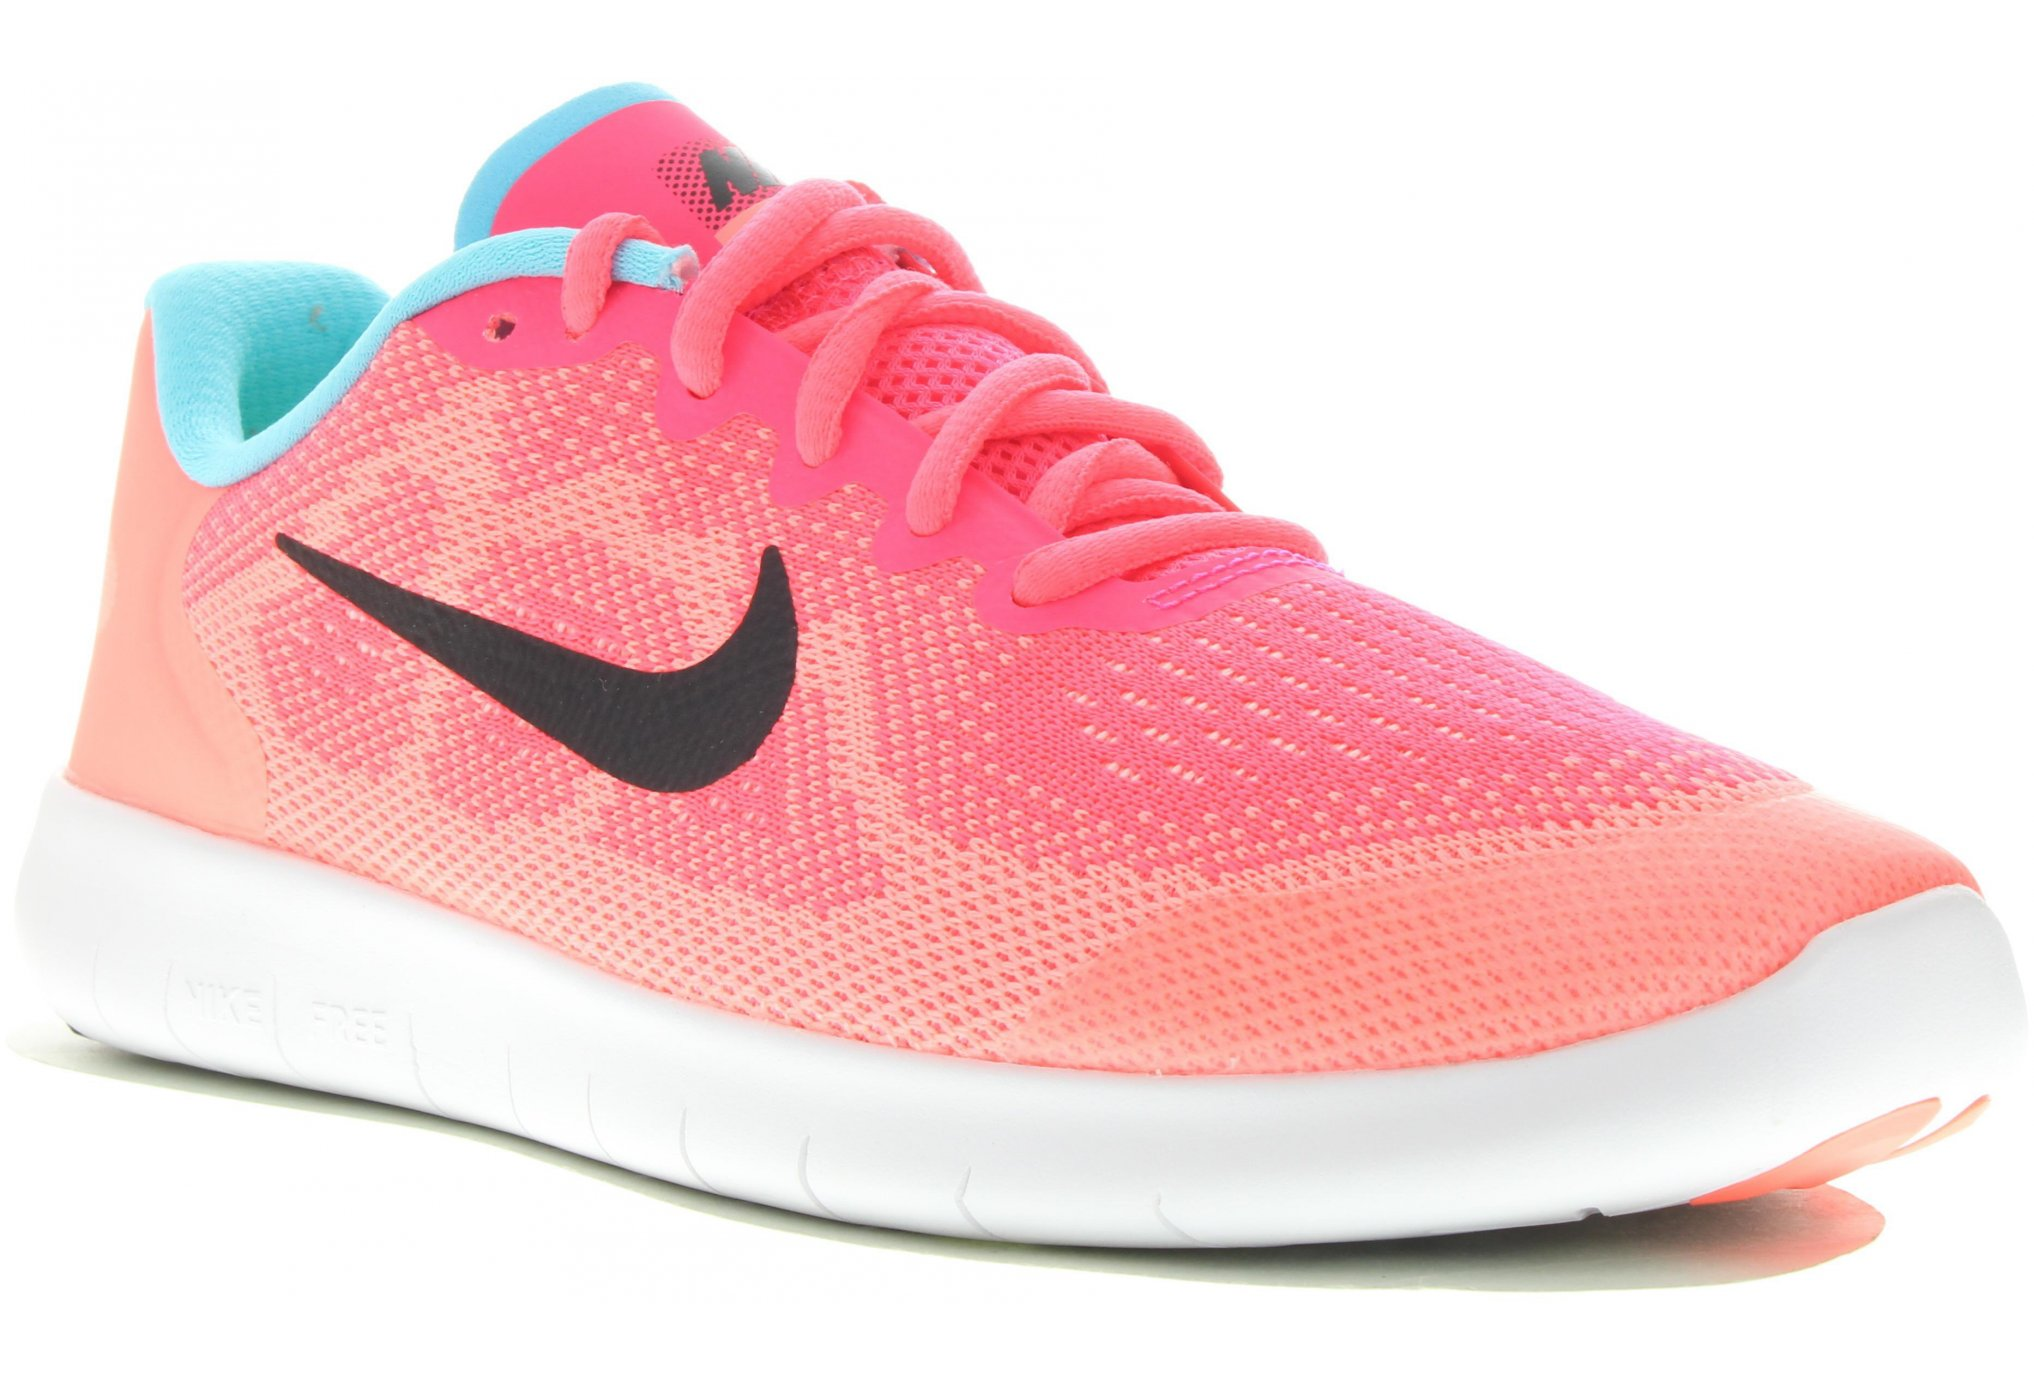 escarp 39 haims nike free rn 2017 gs chaussures running femme. Black Bedroom Furniture Sets. Home Design Ideas